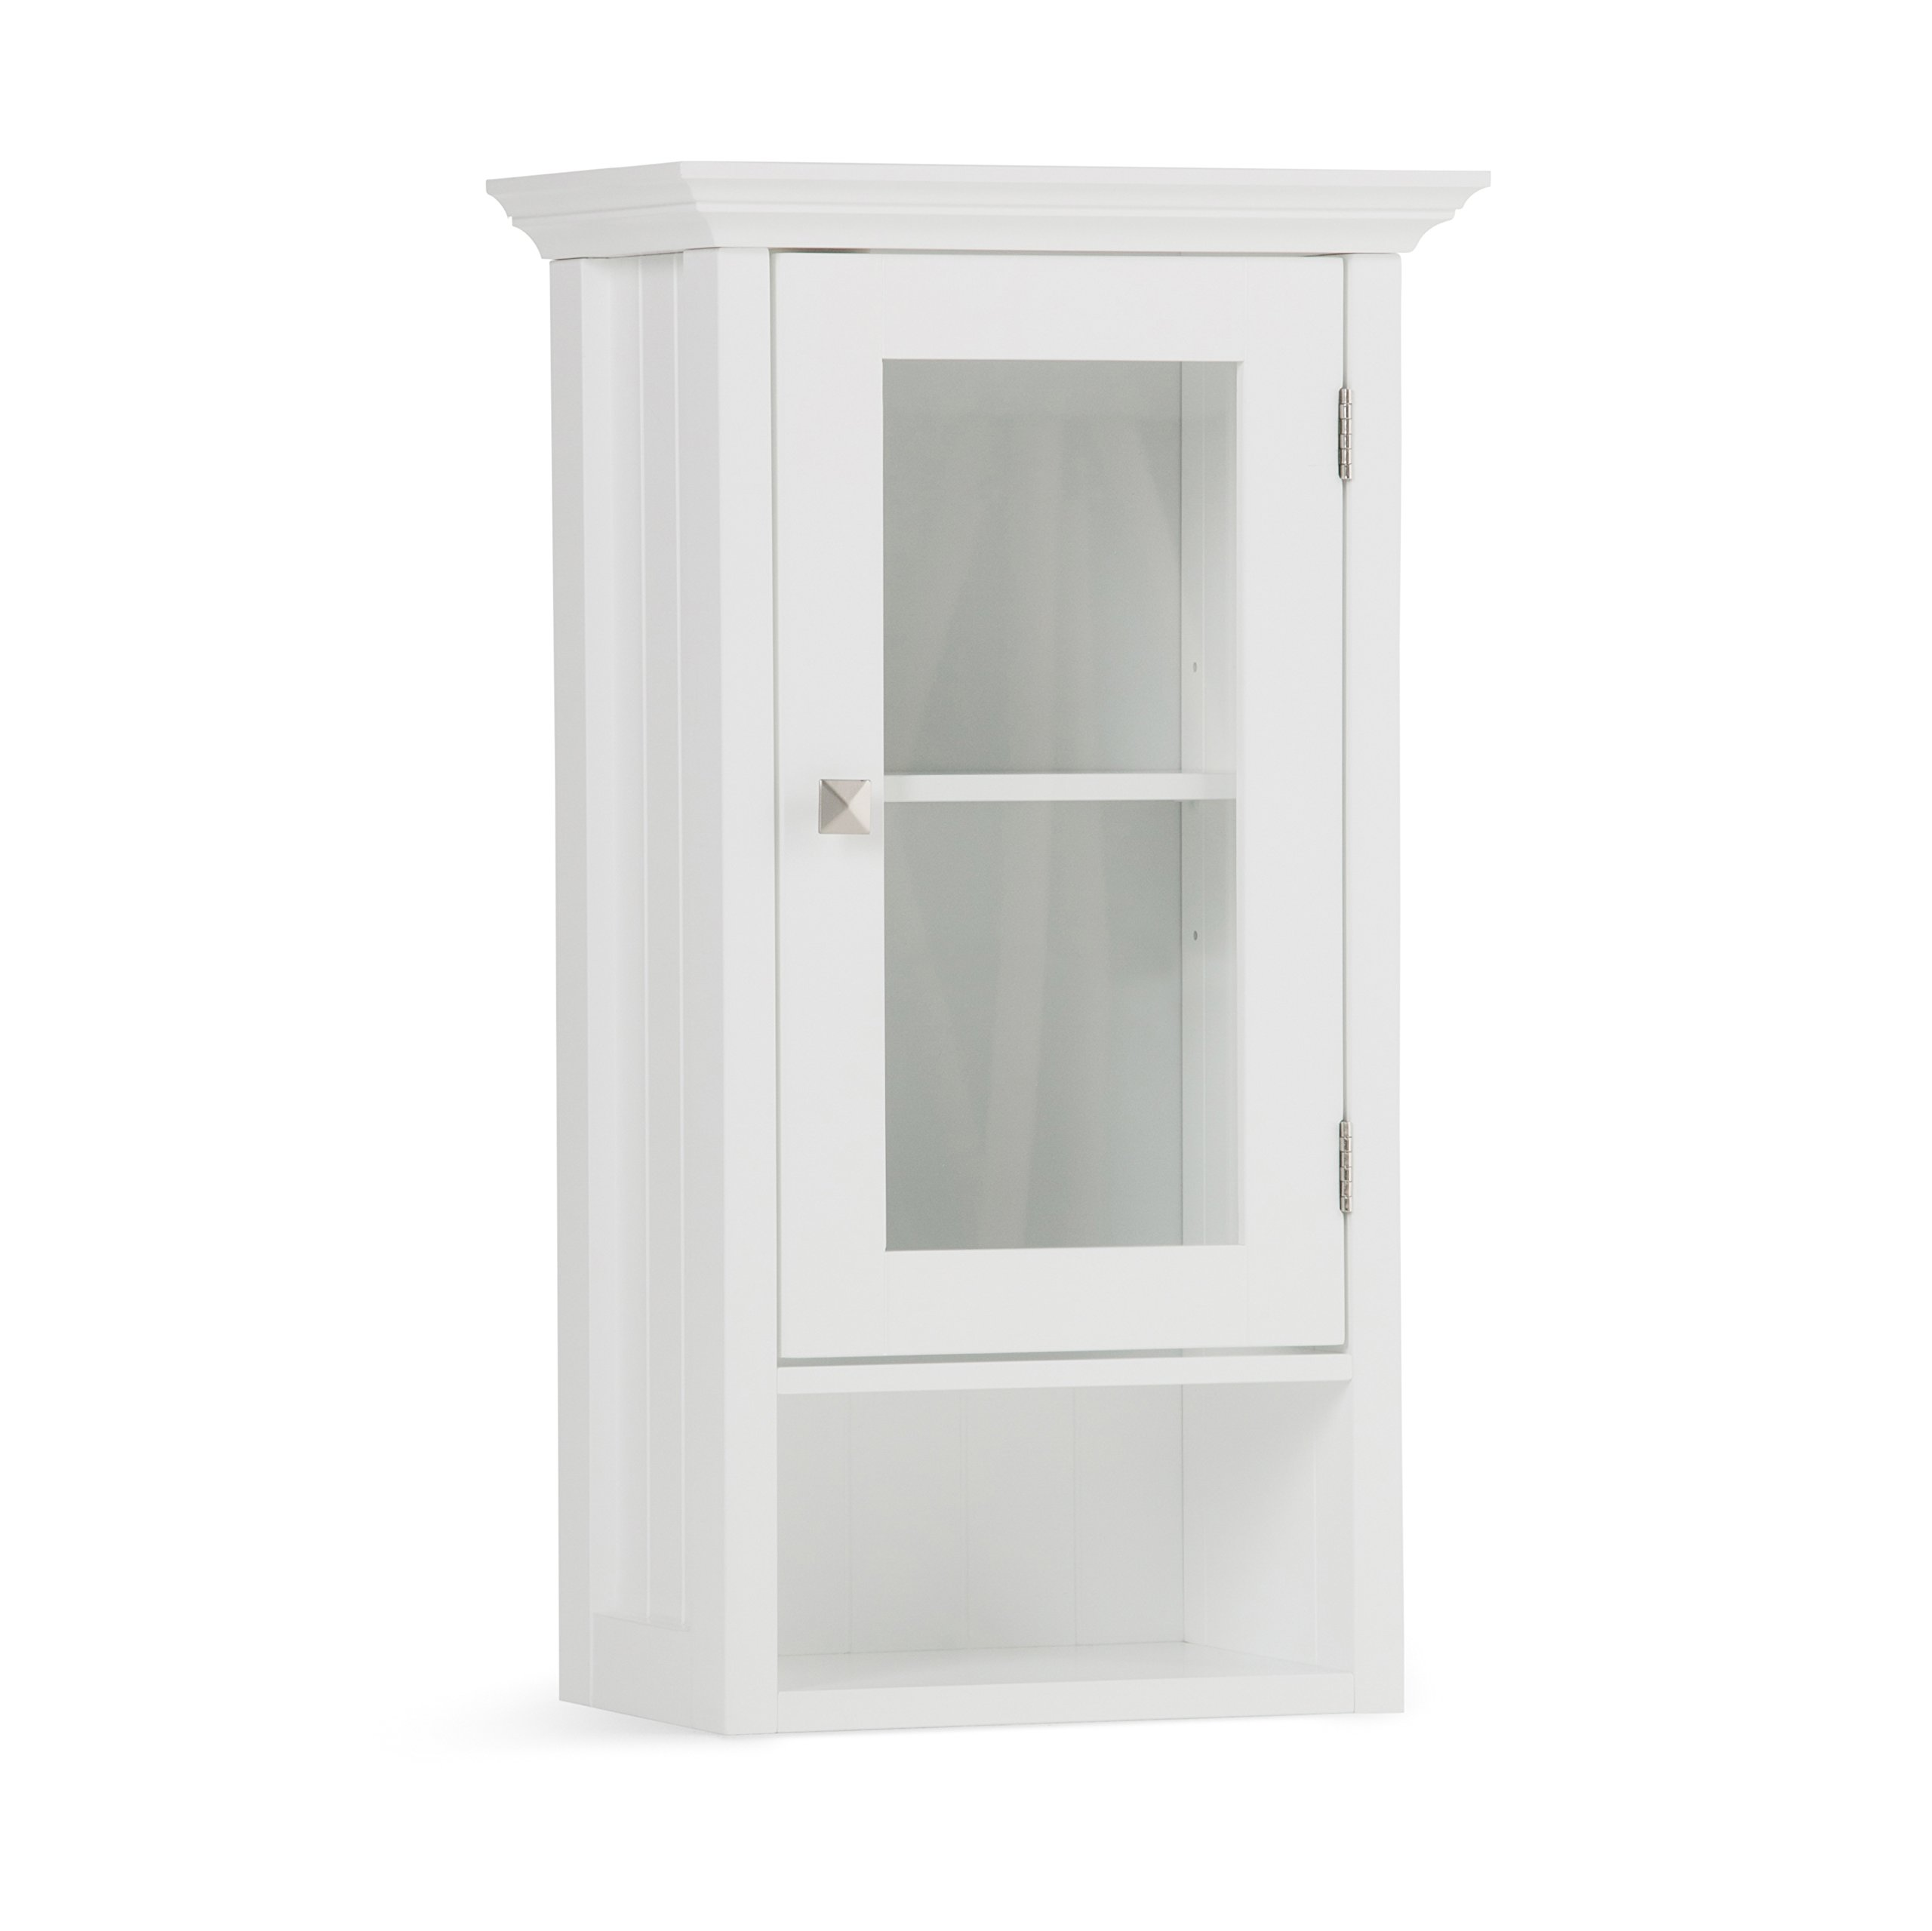 Simpli Home Acadian Single Door Wall Cabinet, White